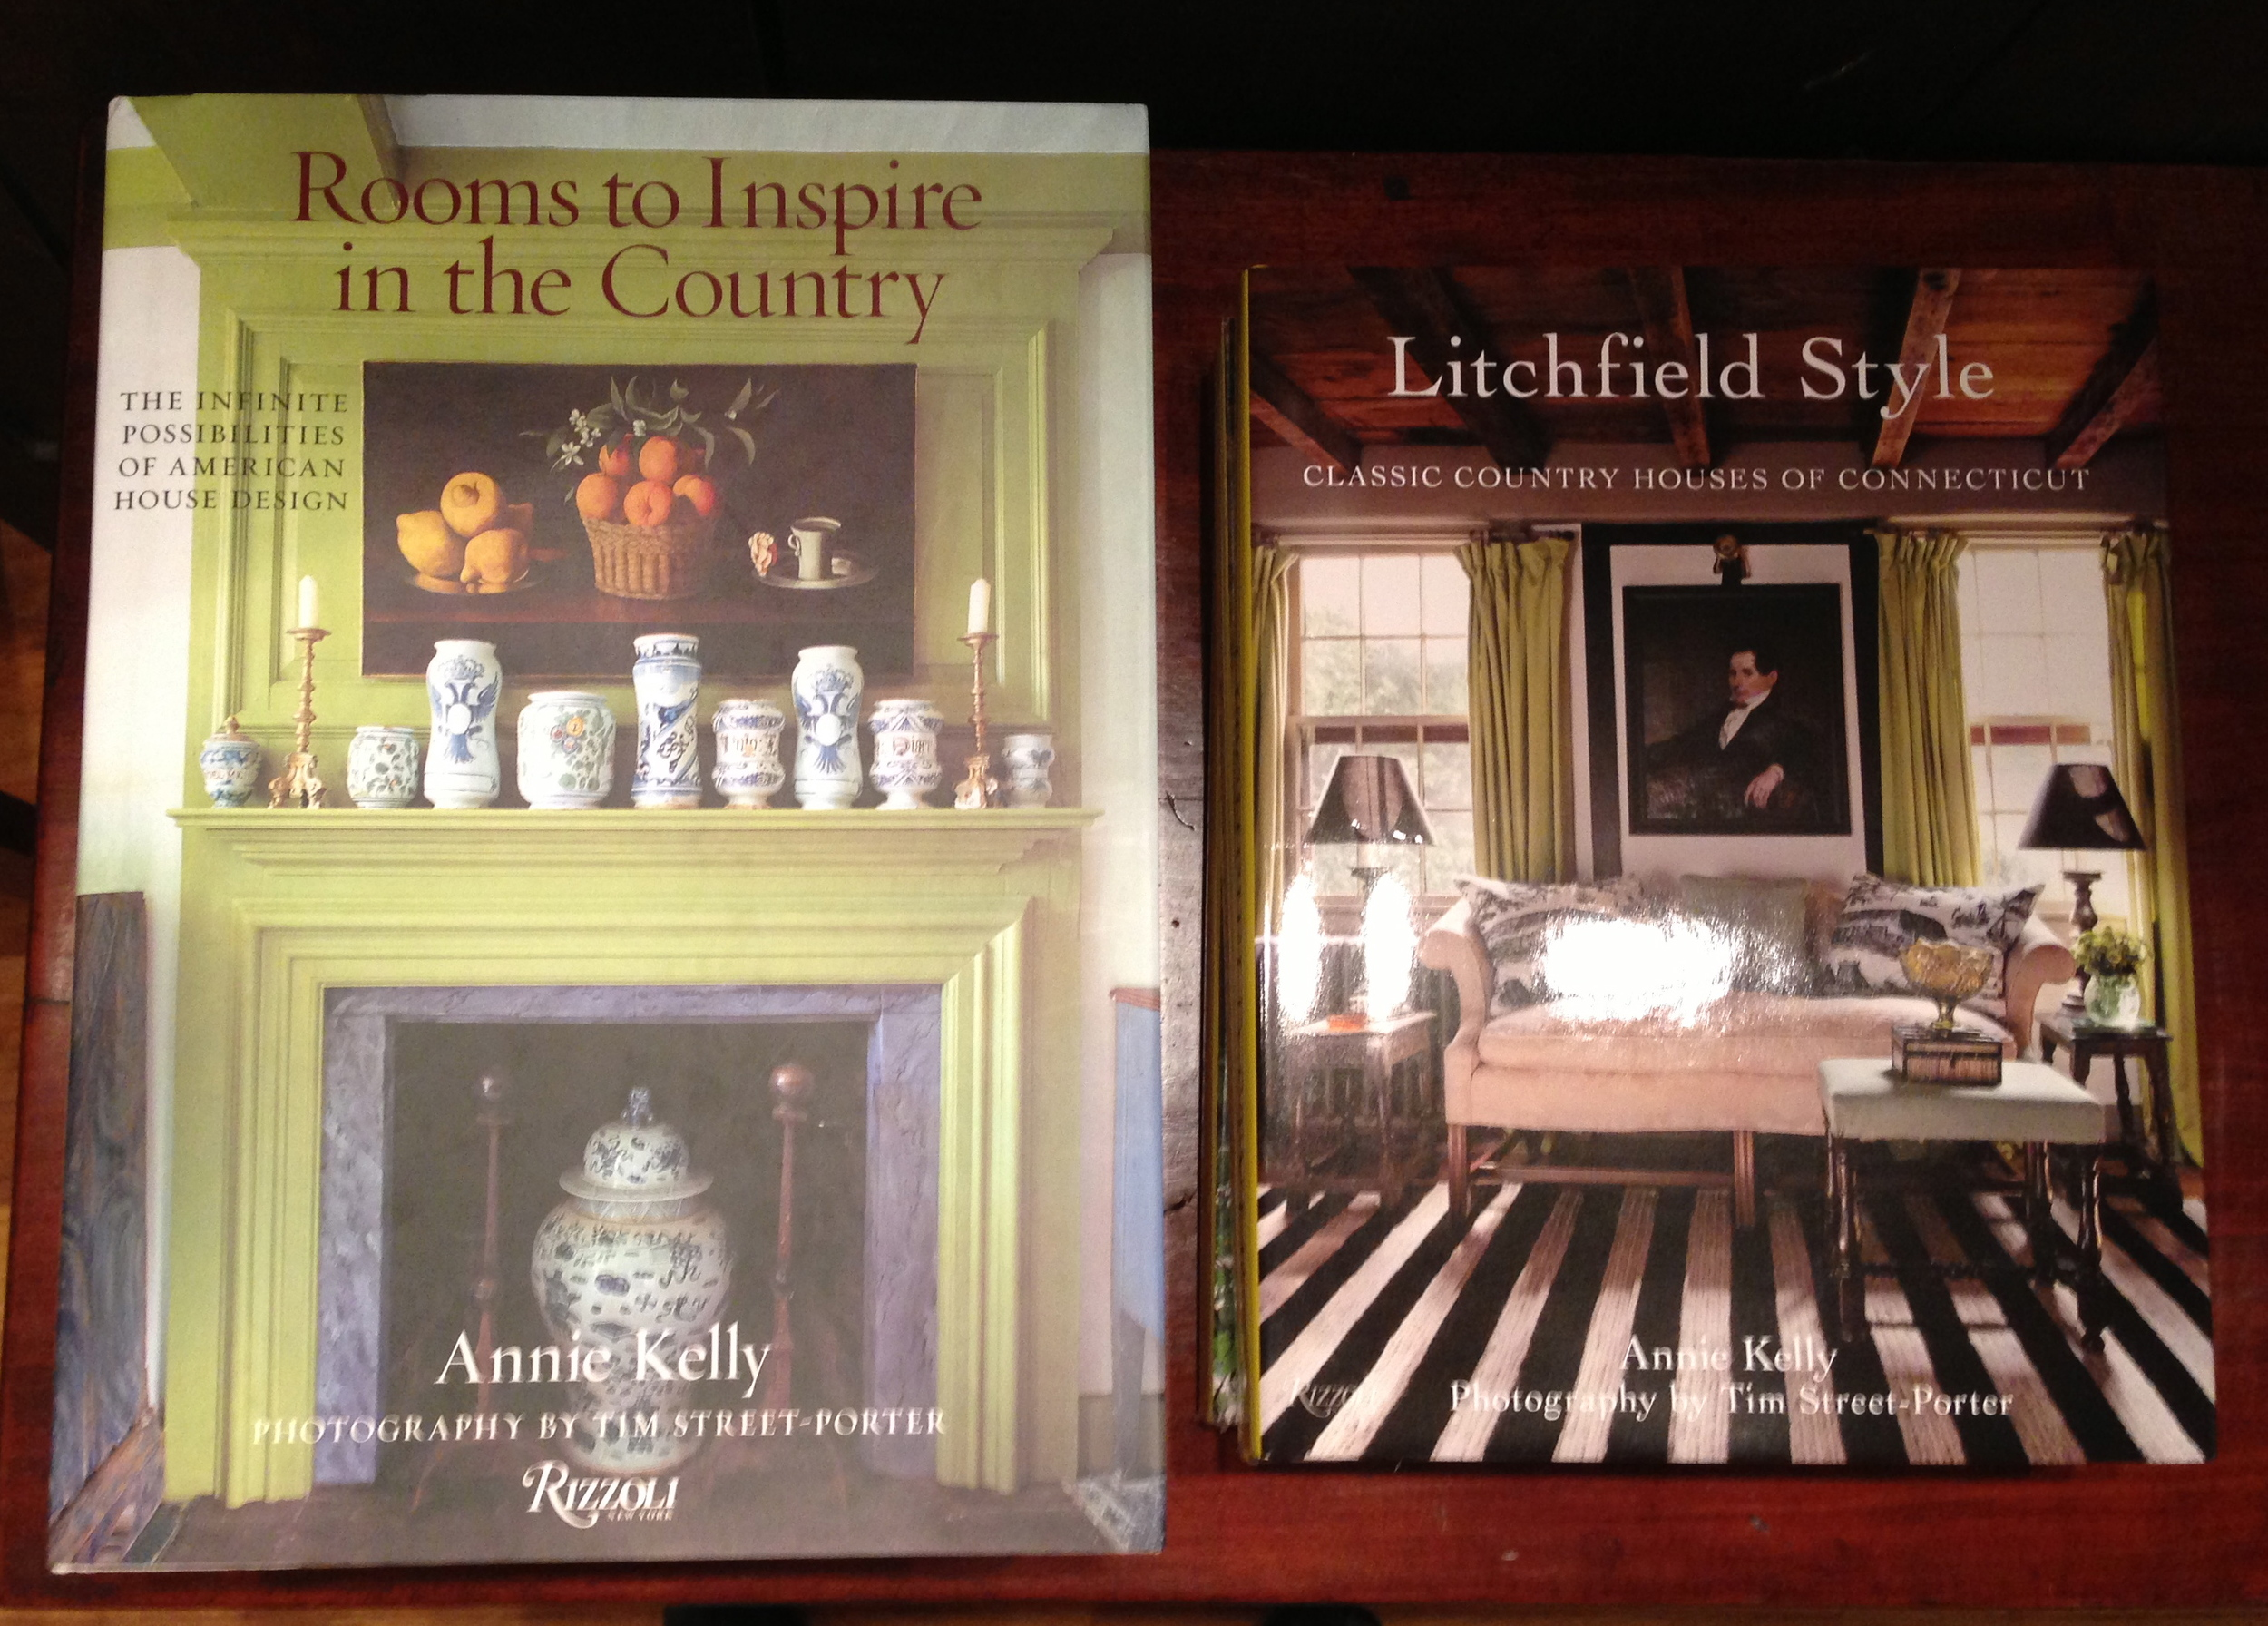 Two of the fabulous design books written and photographed by husband and wife team,Annie Kelly and Tim Street-Porter